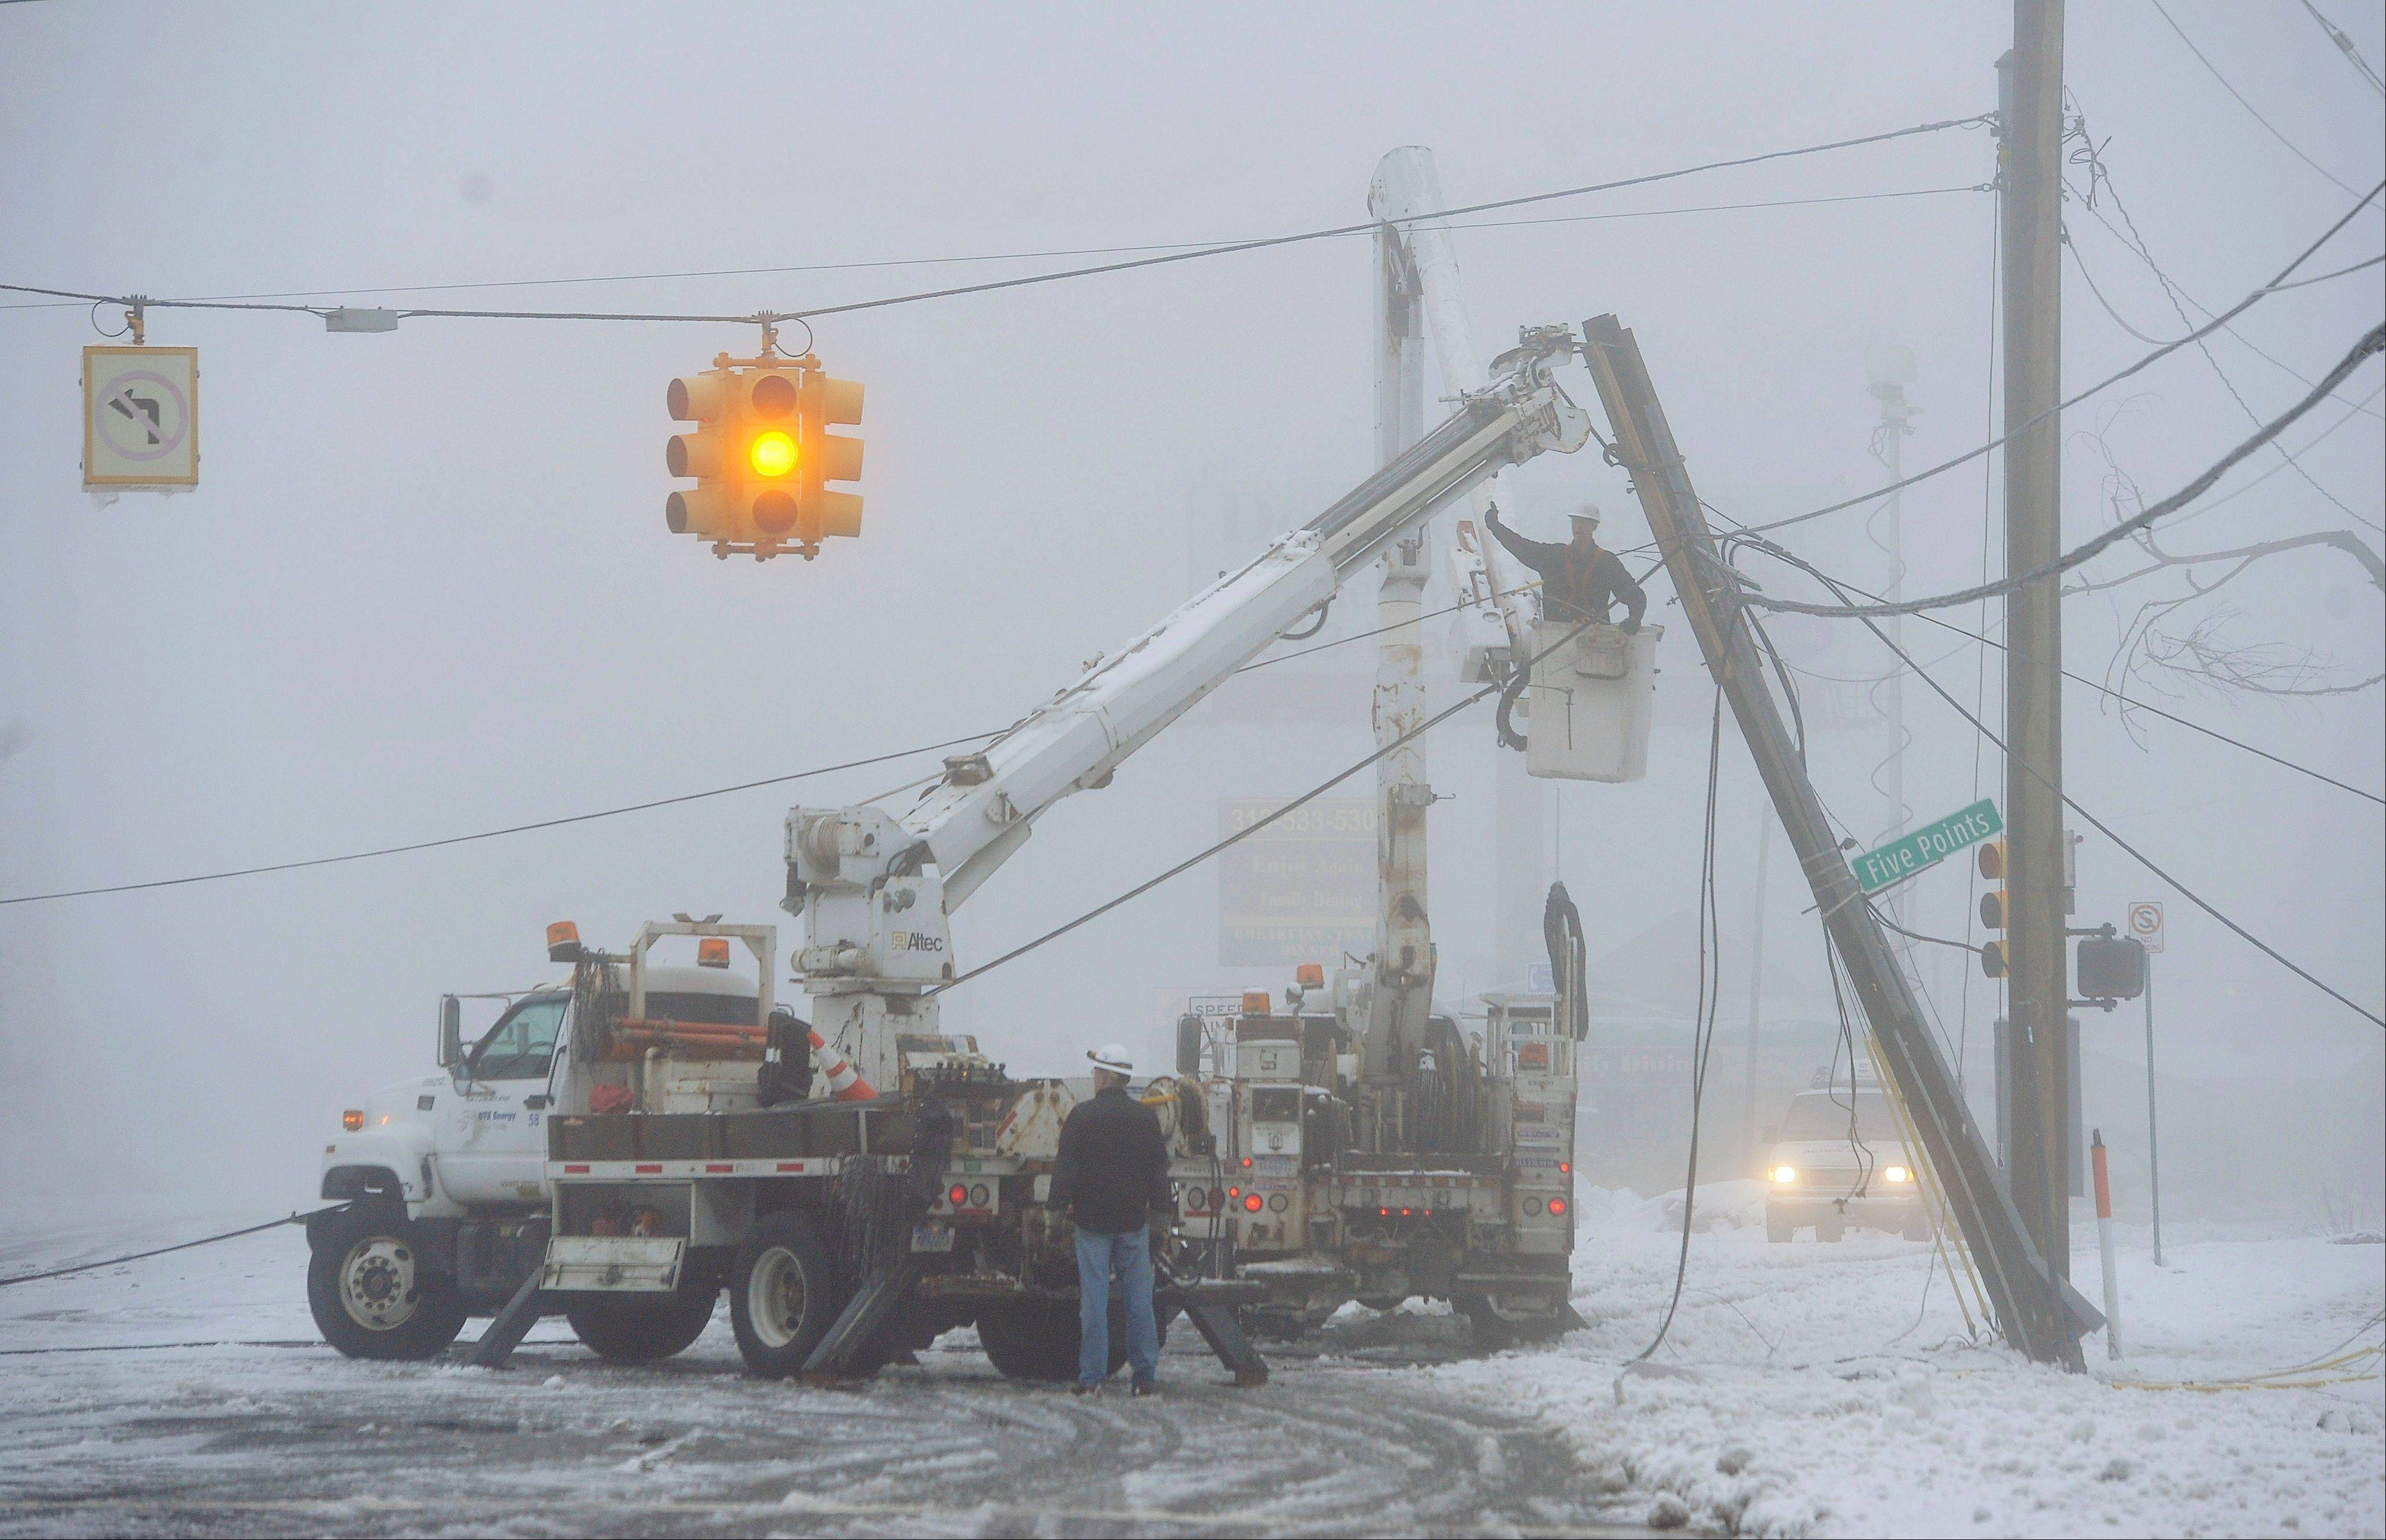 Fog shrouds work crews repairing down power lines Wednesday at 8 mile and Five points, in Southfield, Mich. The storm that hit the nation's midsection dropped at least 7 inches of snow on parts of Michigan and created dangerous driving conditions.